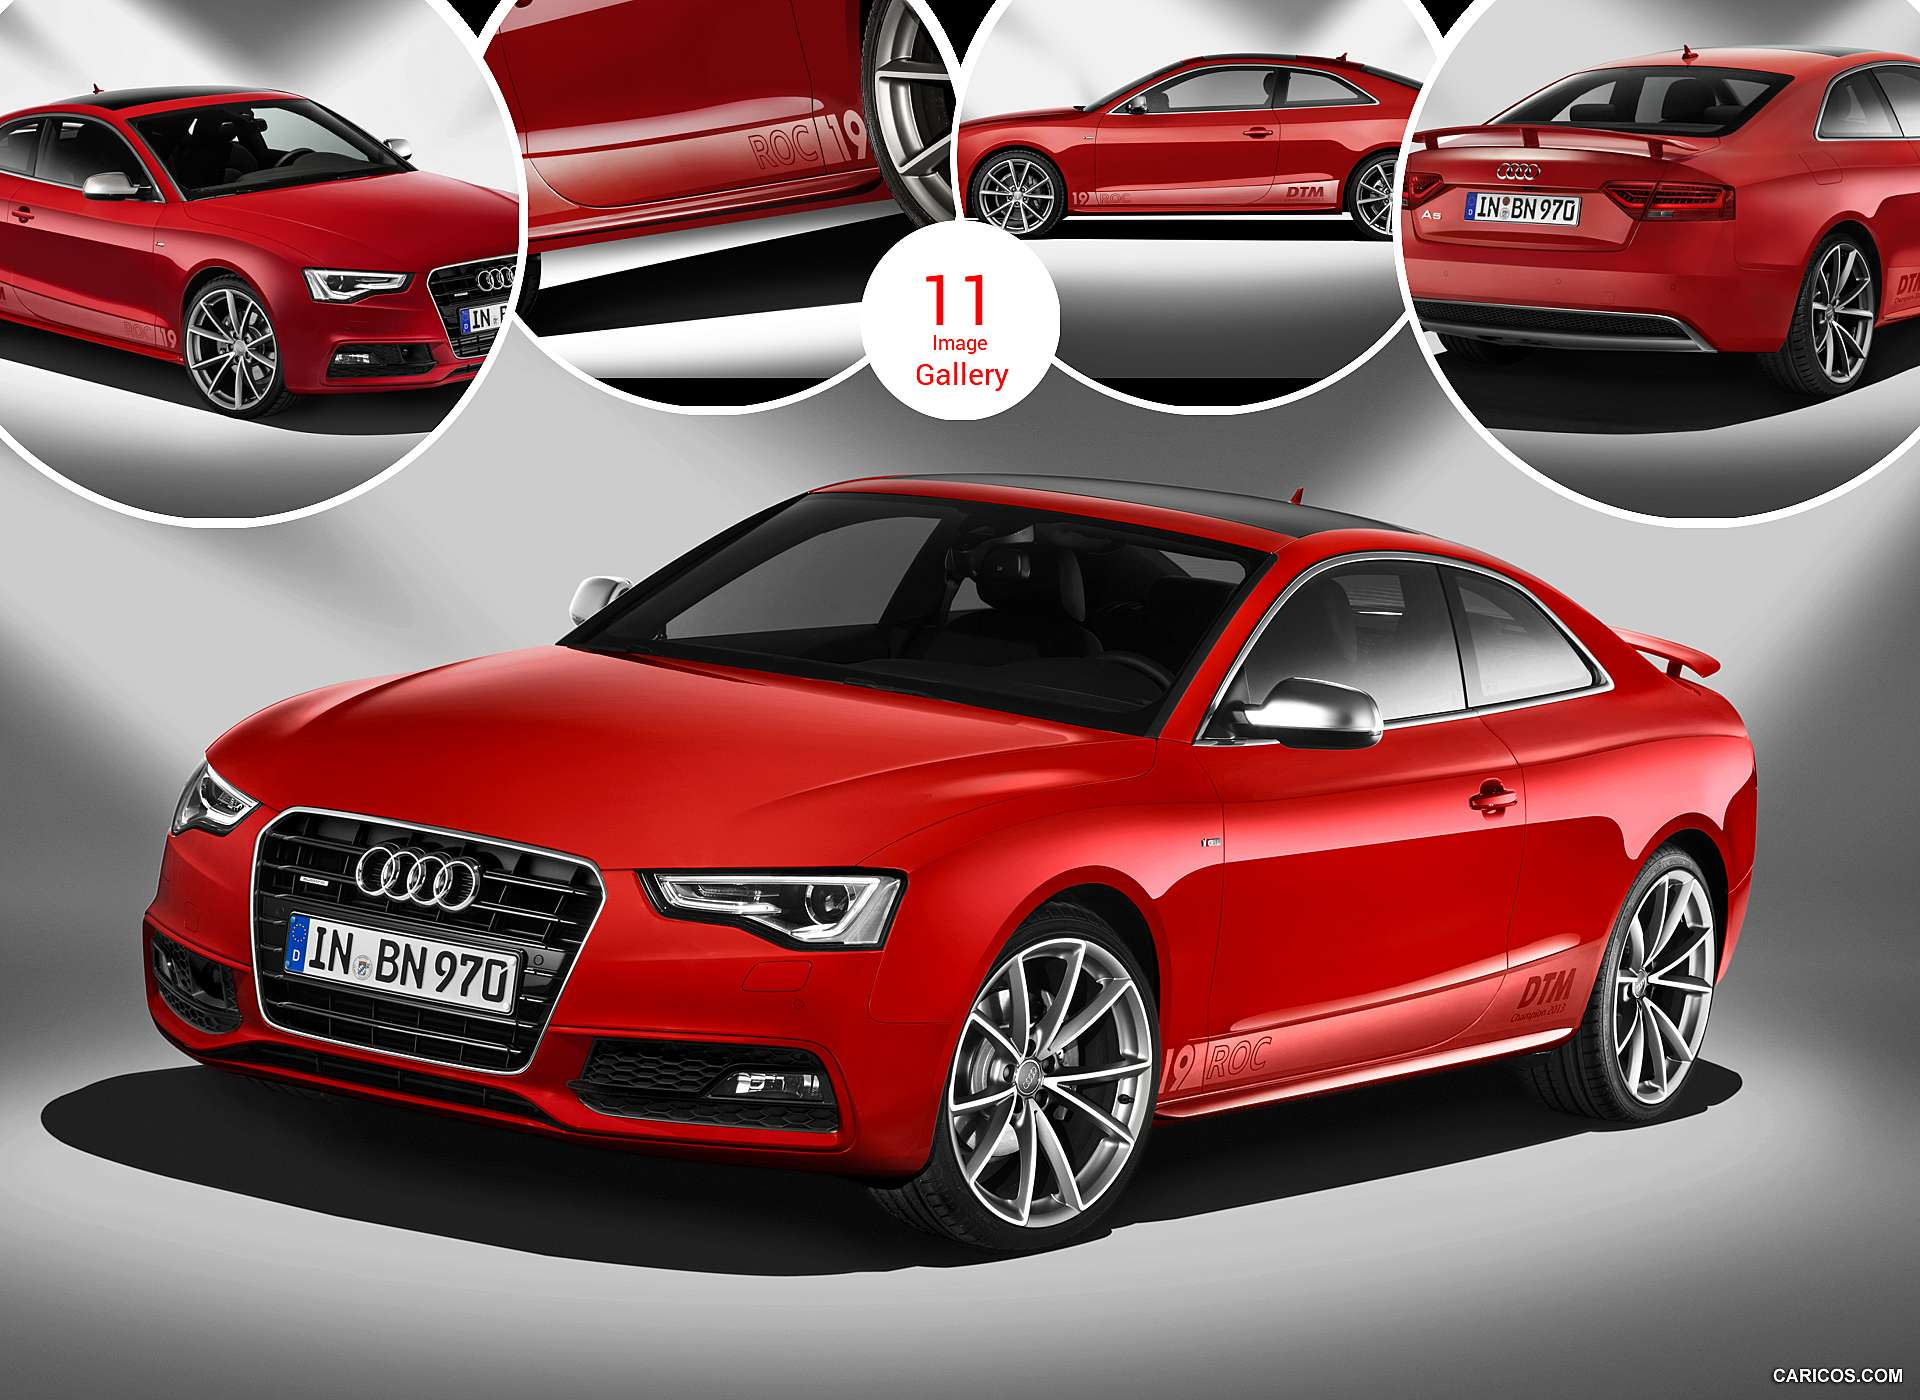 2014 Audi A5 Coupe DTM Champion Special Edition